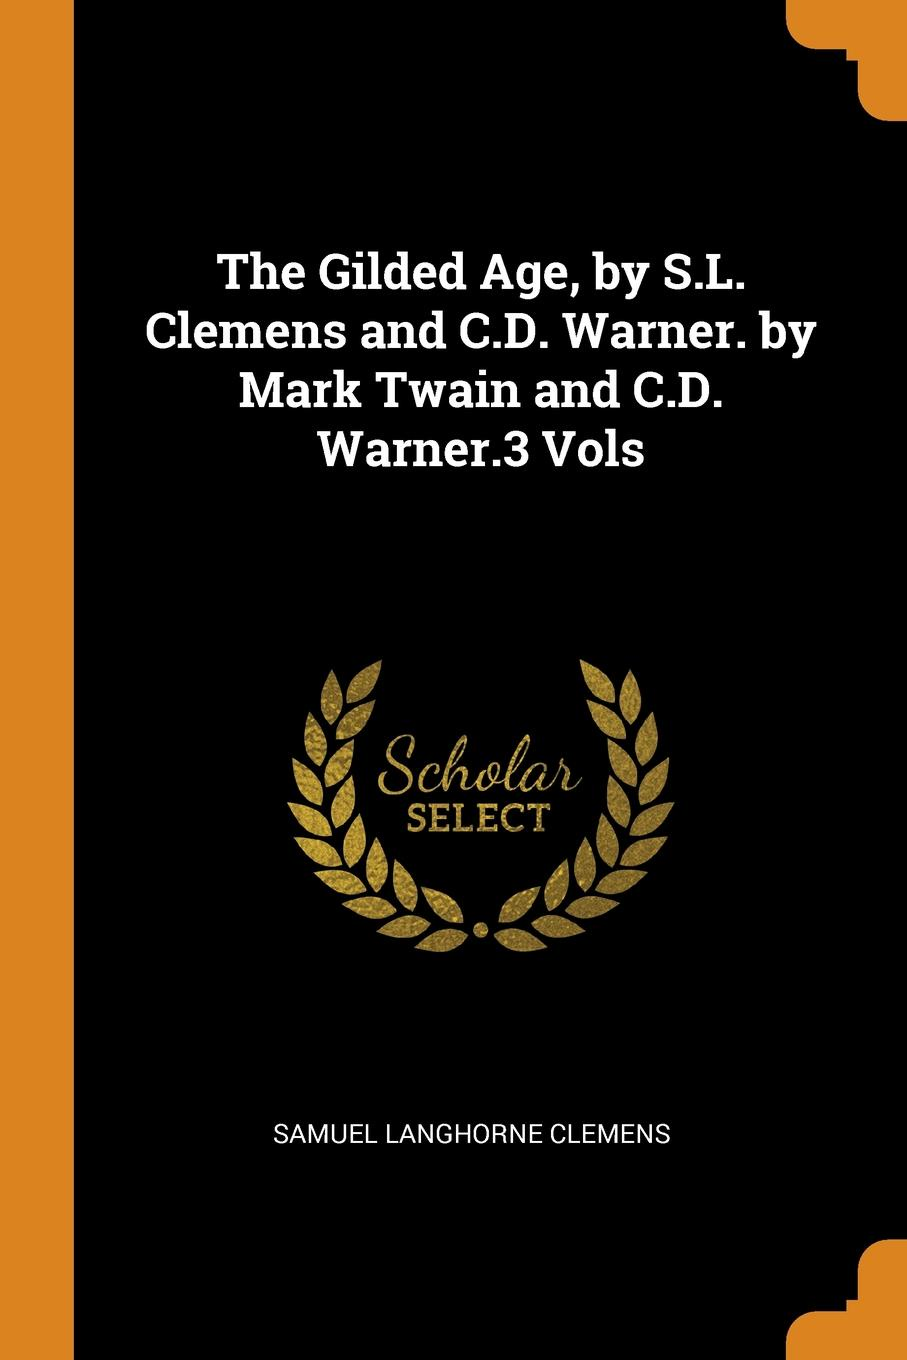 Samuel Langhorne Clemens The Gilded Age, by S.L. Clemens and C.D. Warner. by Mark Twain and C.D. Warner.3 Vols twain m warner c the gilded age